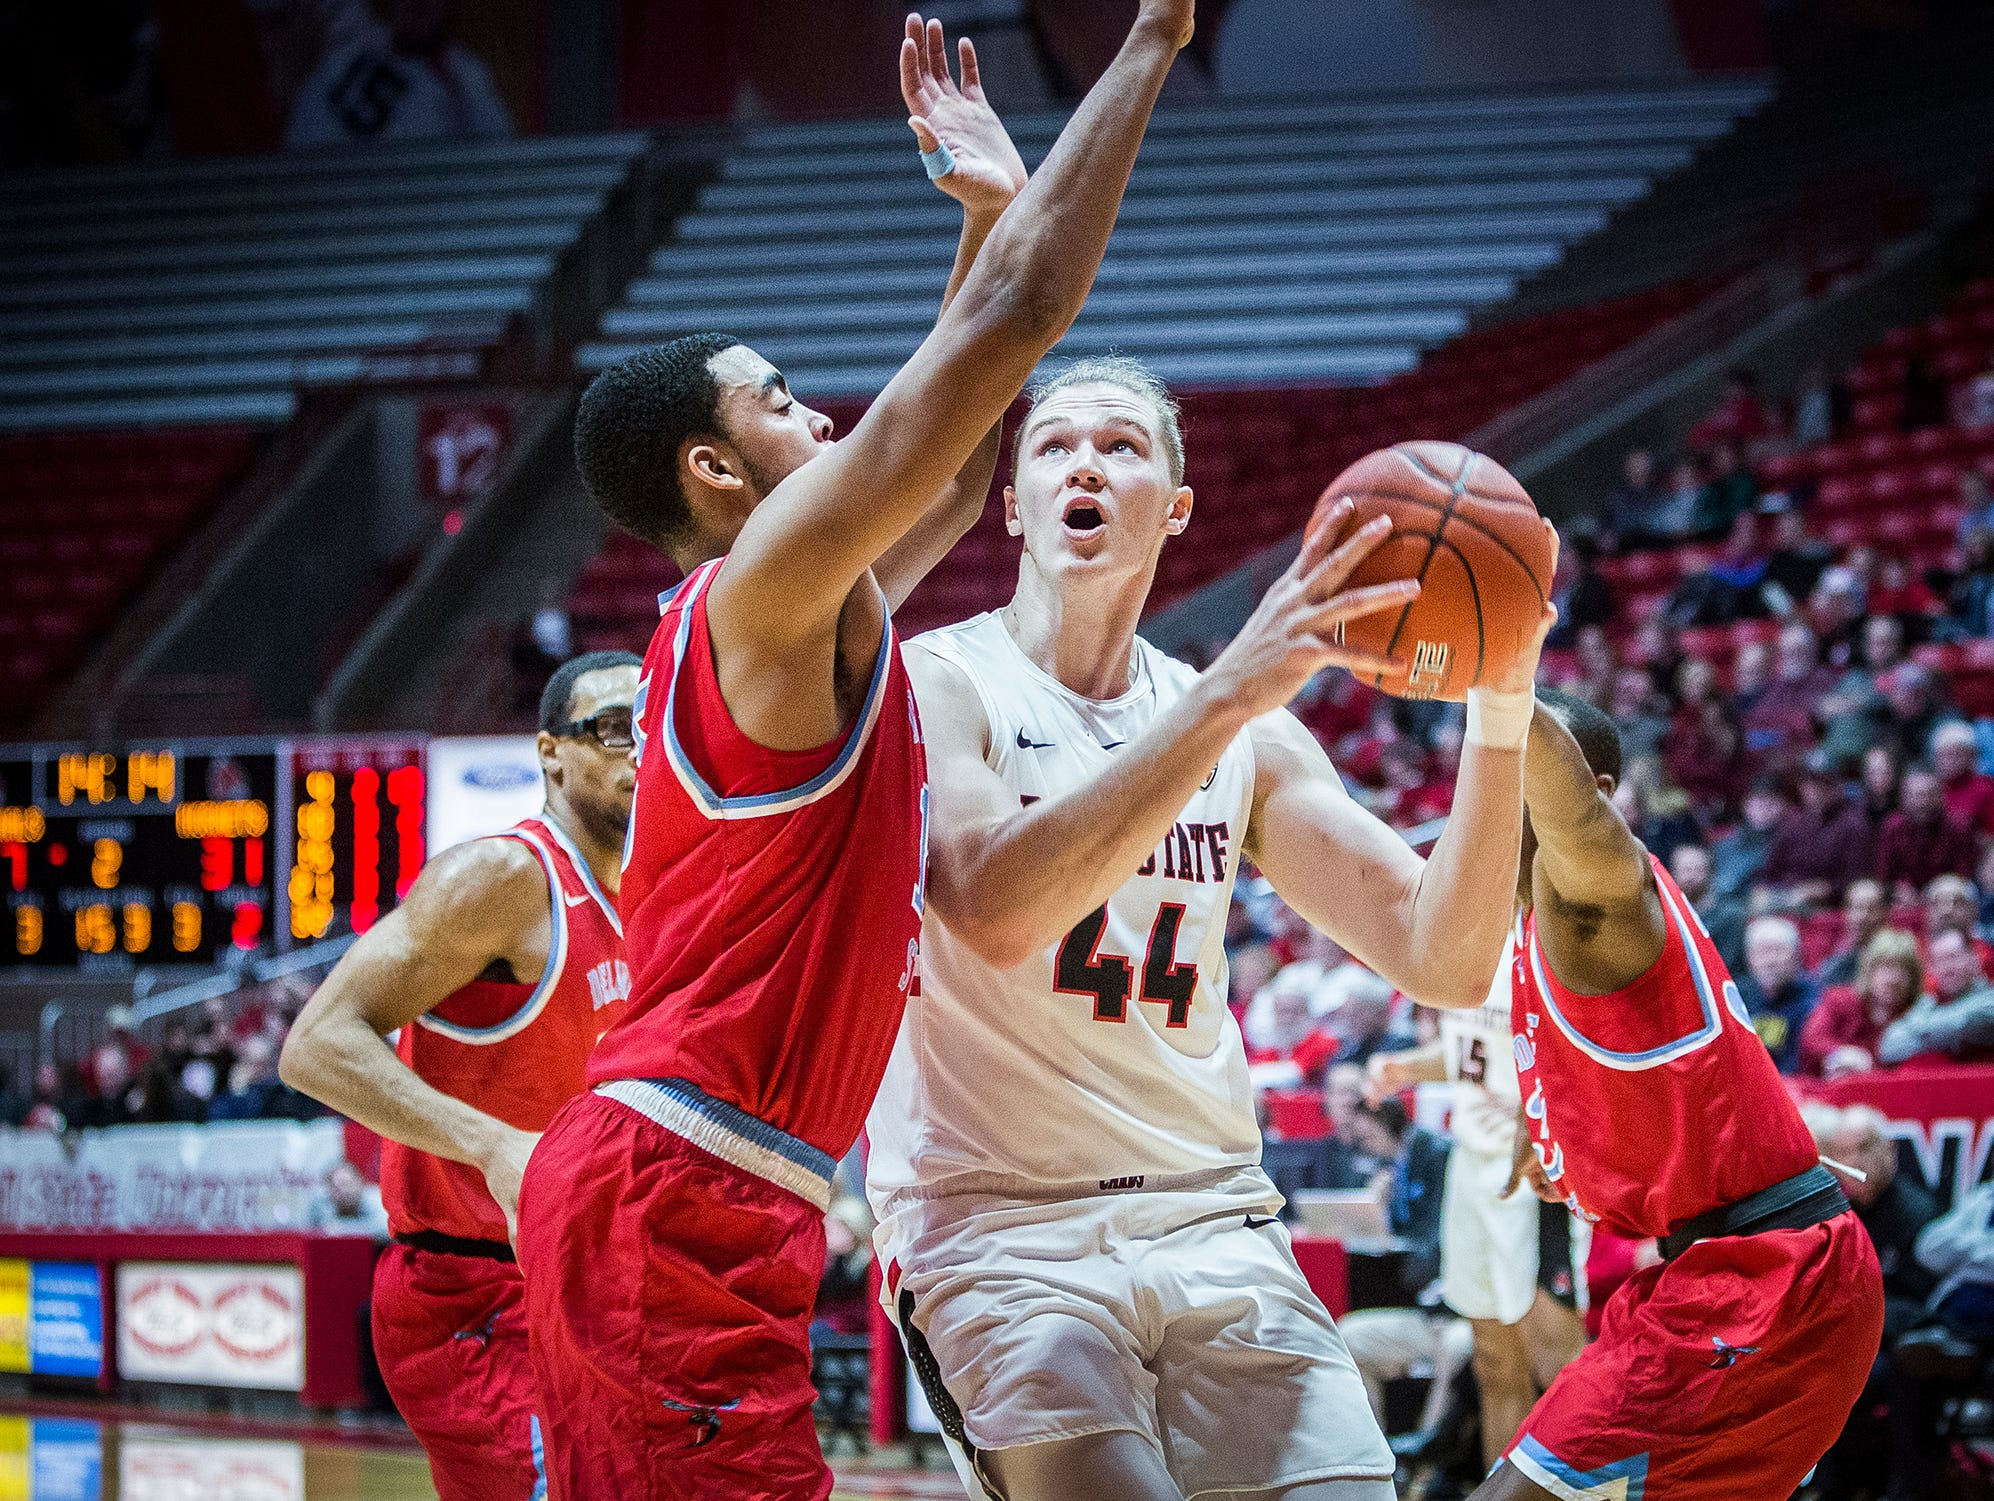 Ball State's Blake Huggins looks for an opening in Delaware State's defense during their game at Worthen Arena Saturday, Dec. 29, 2018.